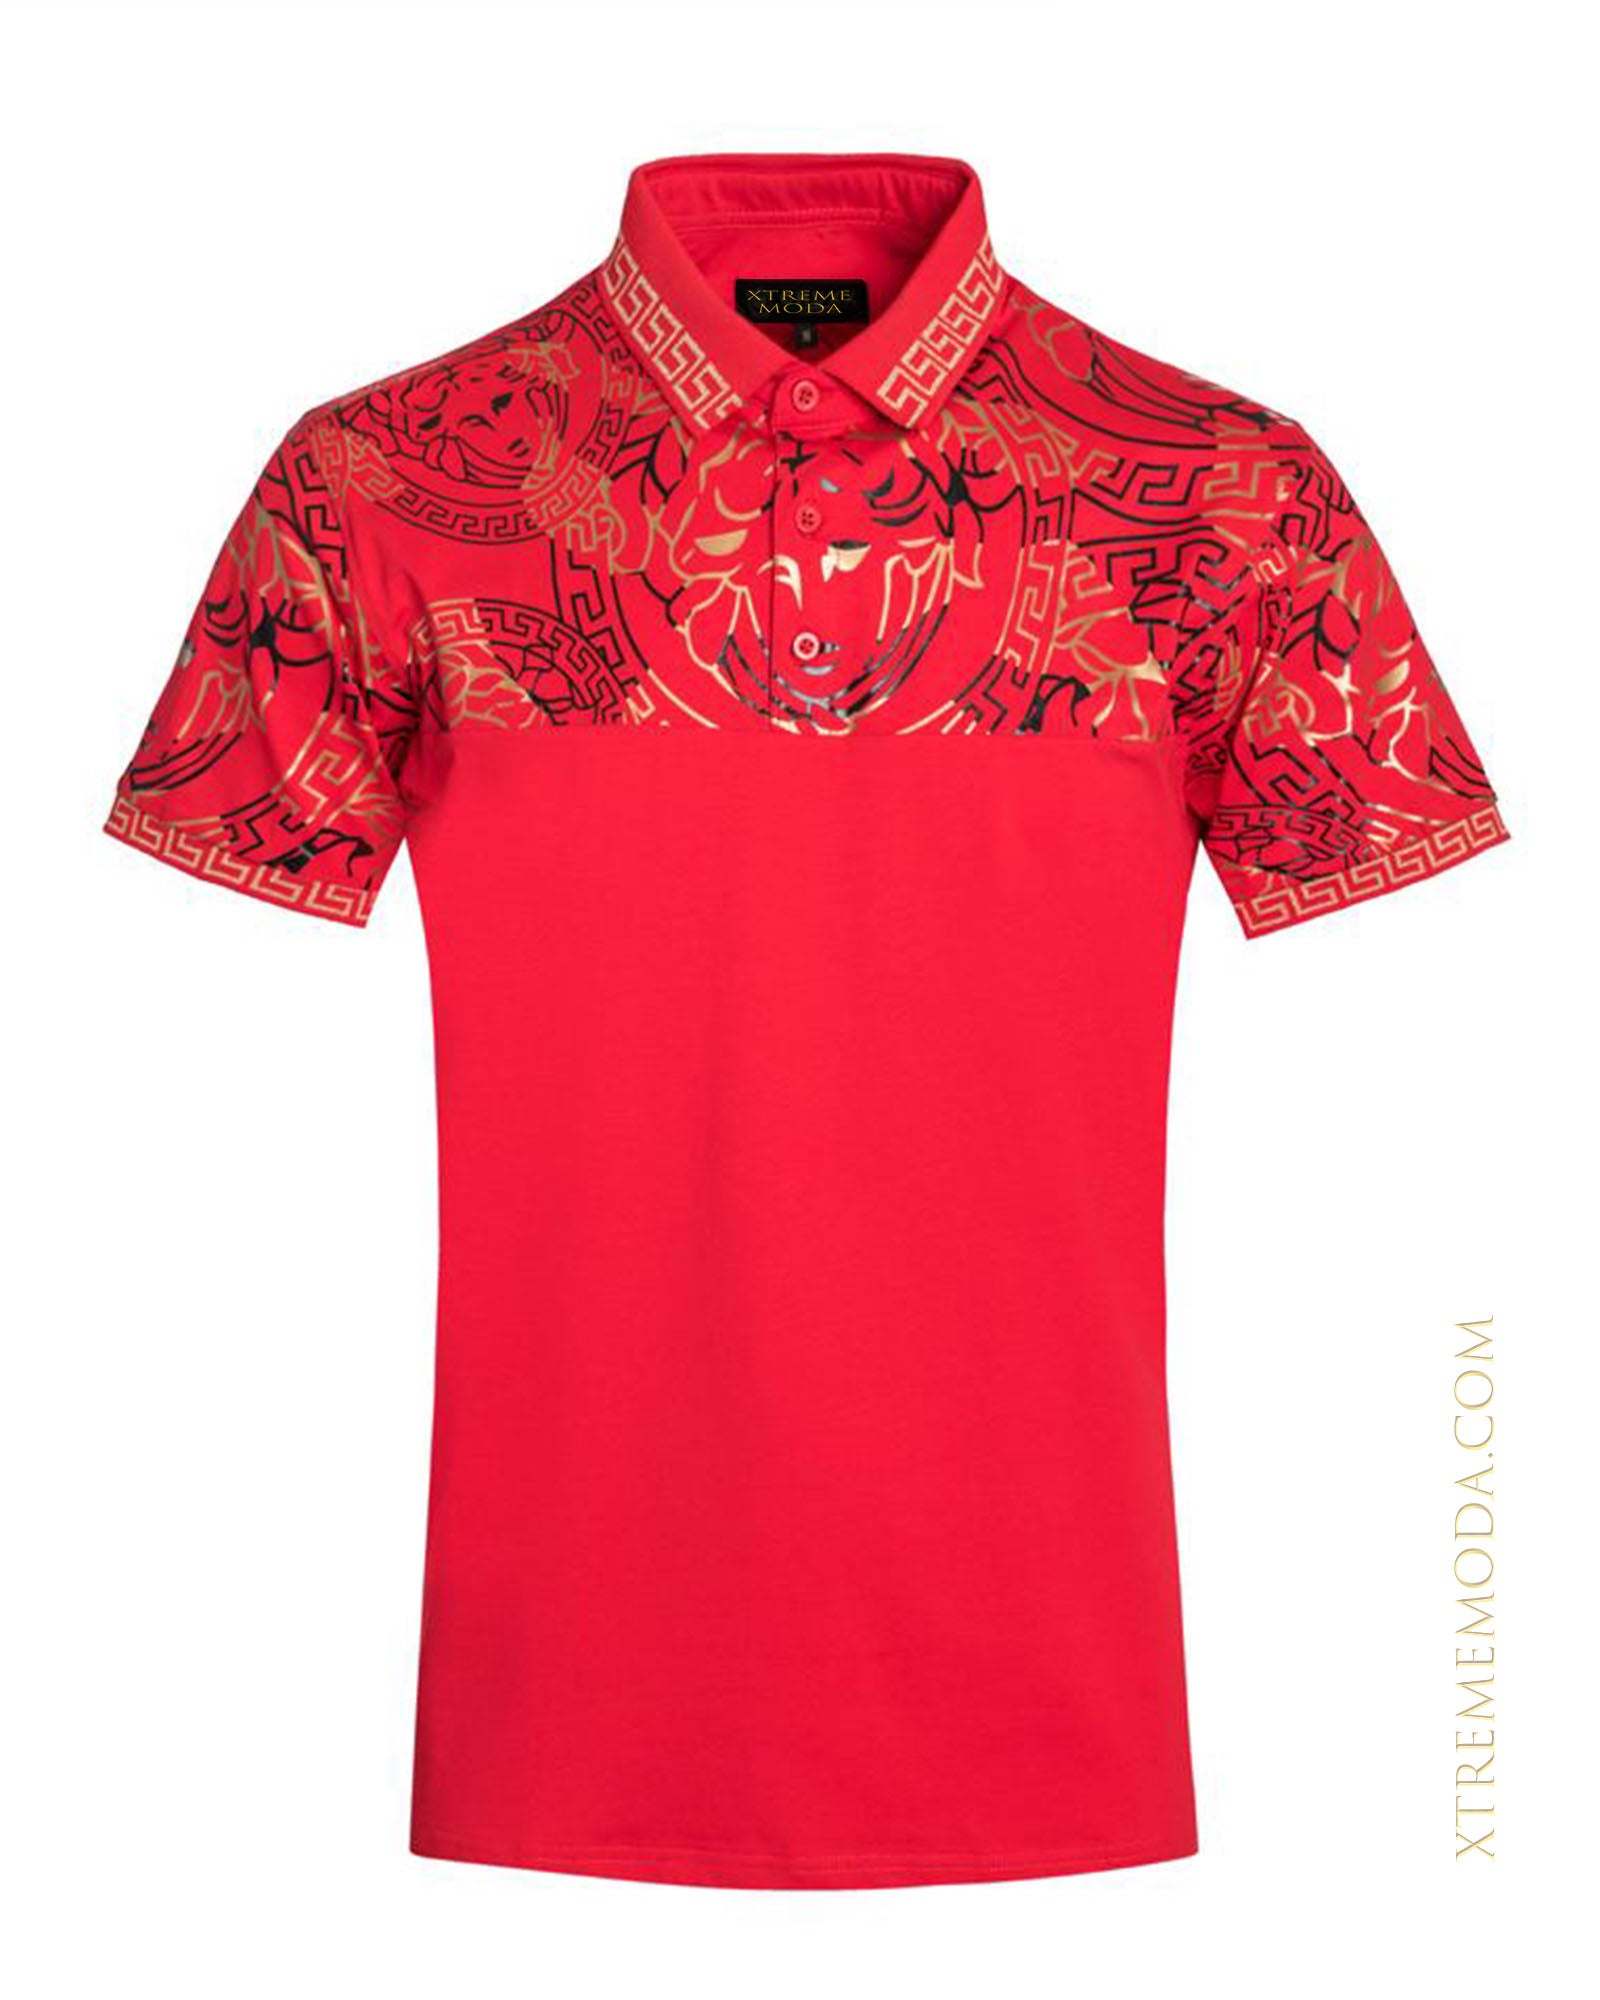 Fashion gold design polo shirt Red